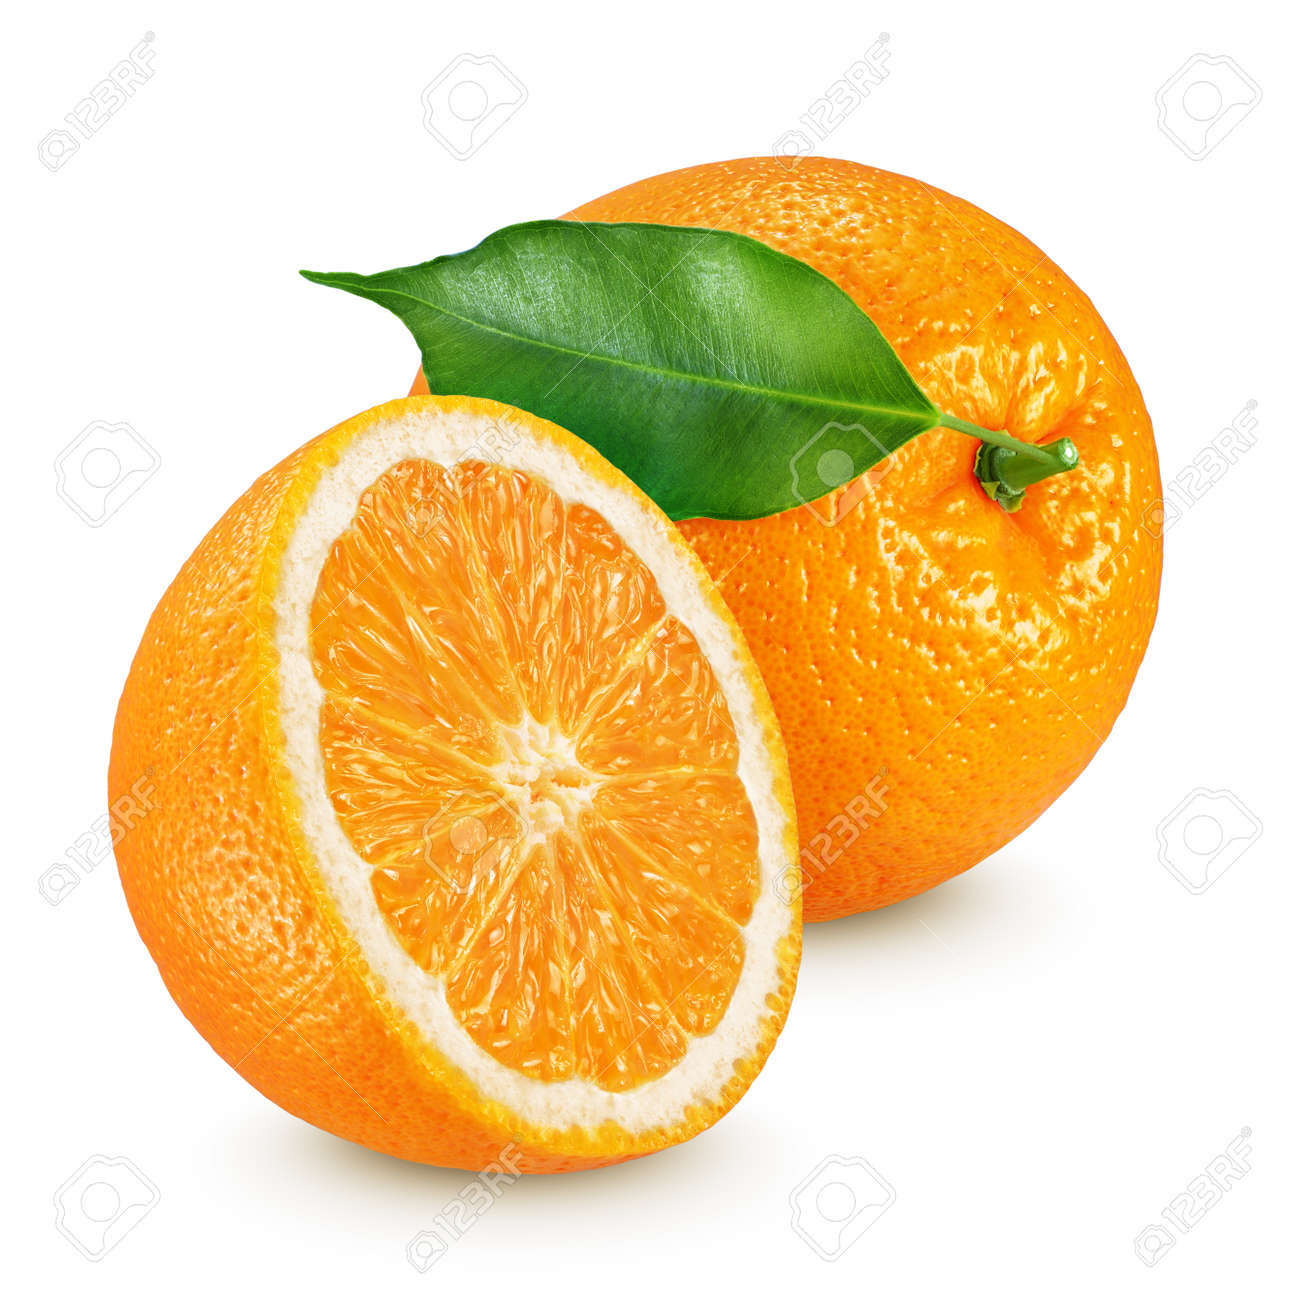 Half and whole ripe oranges fruits with leaf isolated on white background - 130356049